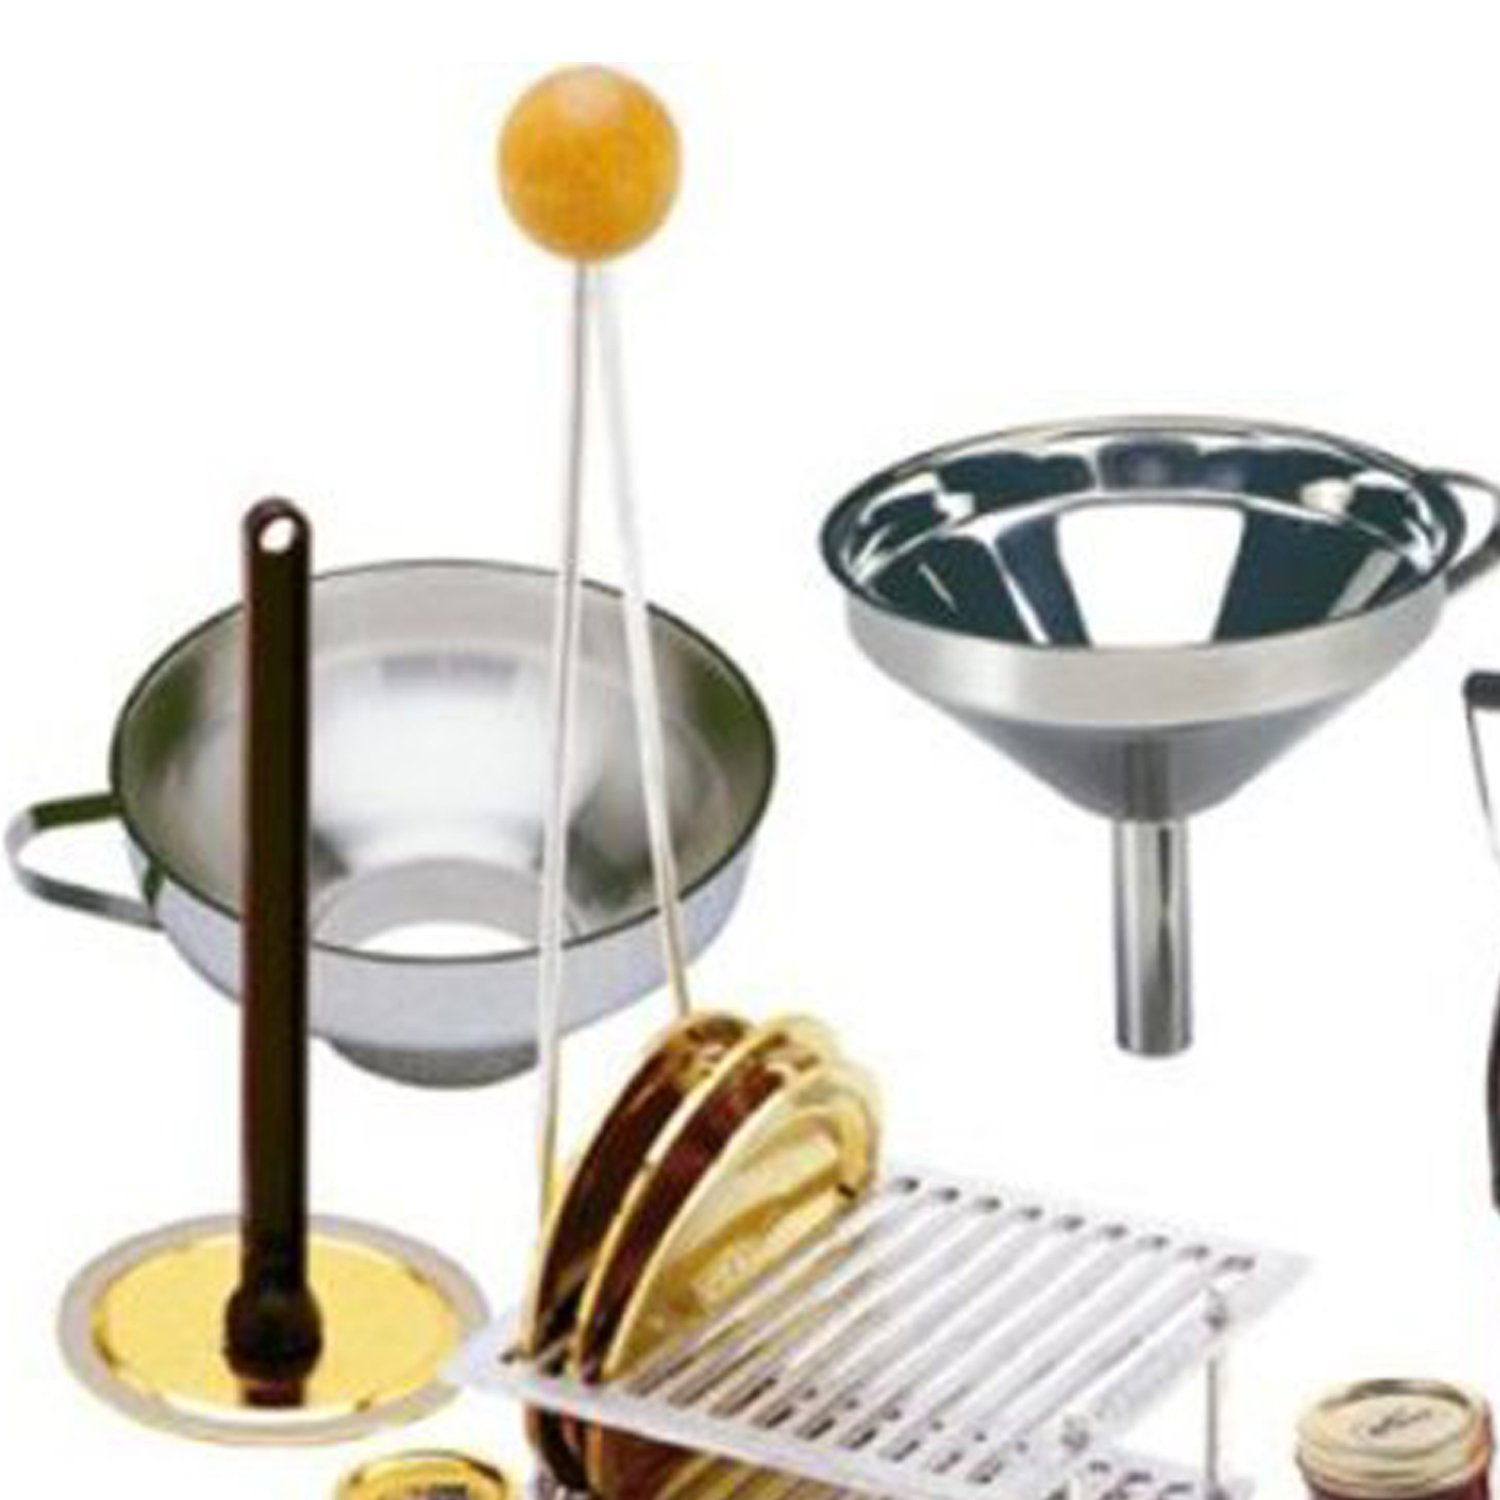 Norpro 2478367600456 7-Piece Home Canning Set by Norpro (Image #2)